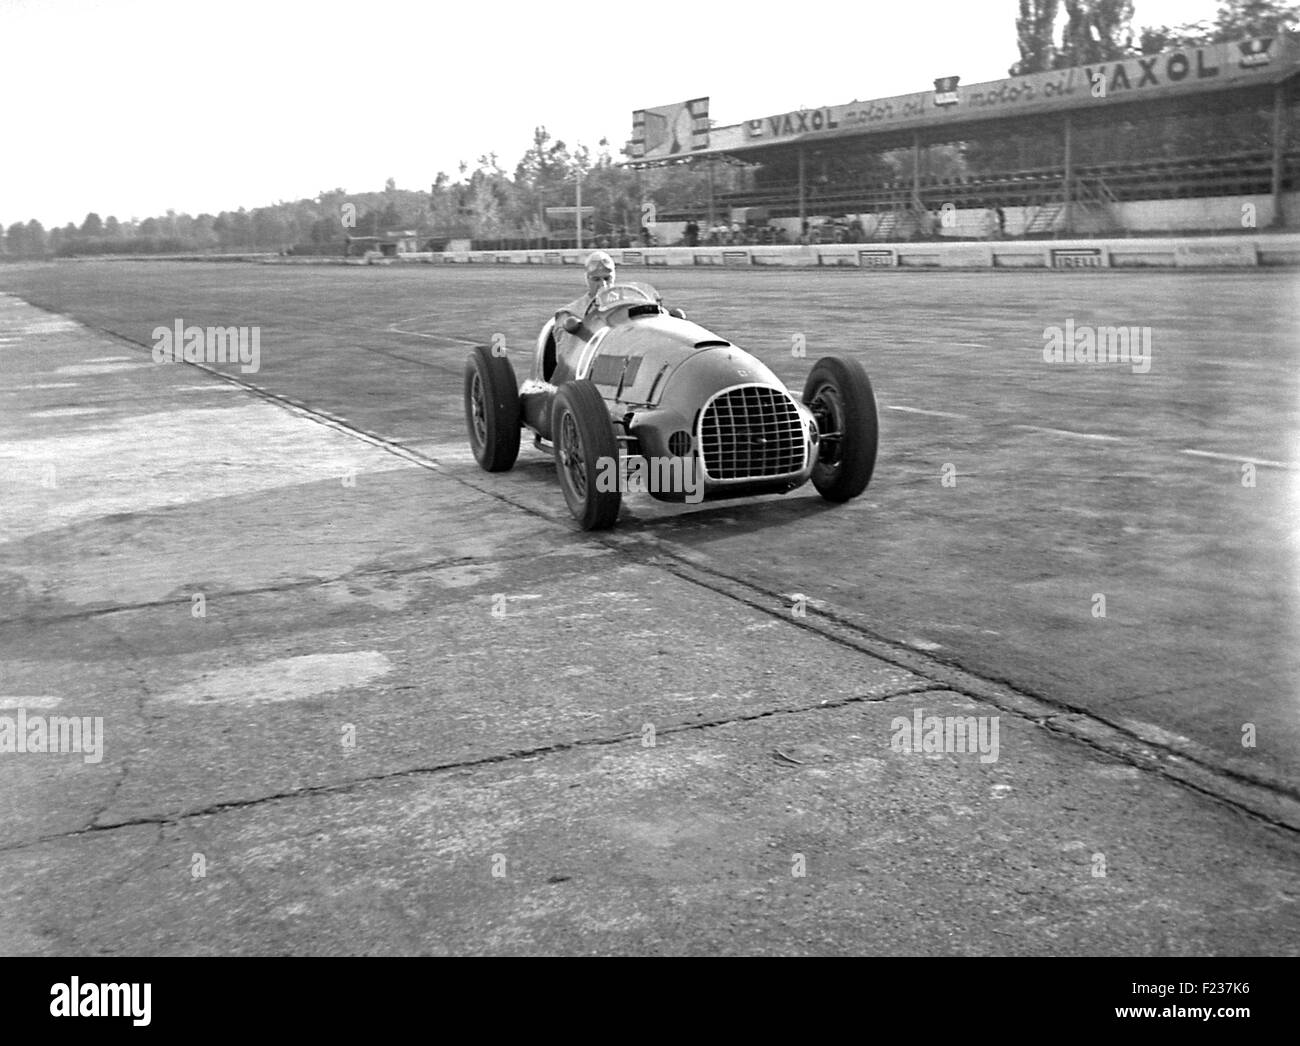 A Ferrari at the Italian GP at Monza 1949 - Stock Image